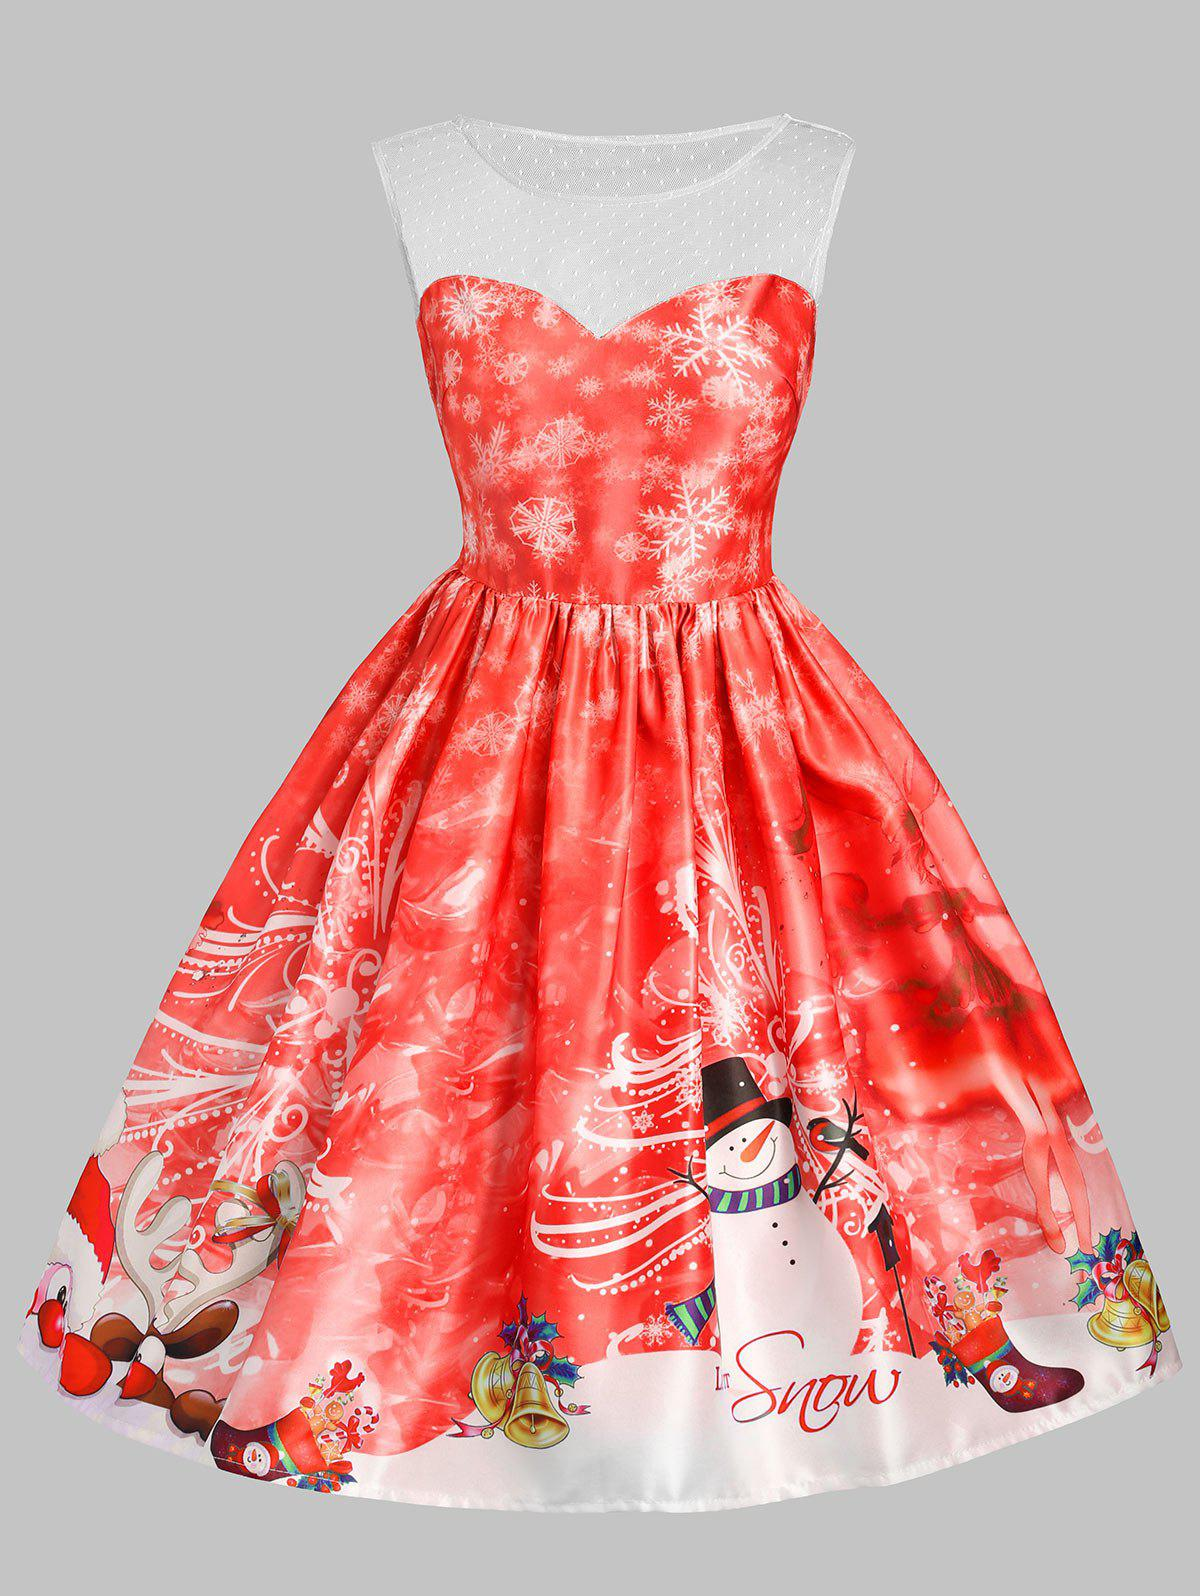 Christmas Snowman Snowflake Mesh Insert DressWOMEN<br><br>Size: S; Color: RED; Style: Vintage; Material: Cotton,Polyester; Silhouette: A-Line; Dresses Length: Knee-Length; Neckline: Round Collar; Sleeve Length: Sleeveless; Embellishment: Mesh; Pattern Type: Letter,Print; With Belt: No; Season: Fall,Spring,Summer; Weight: 0.3500kg; Package Contents: 1 x Dress;